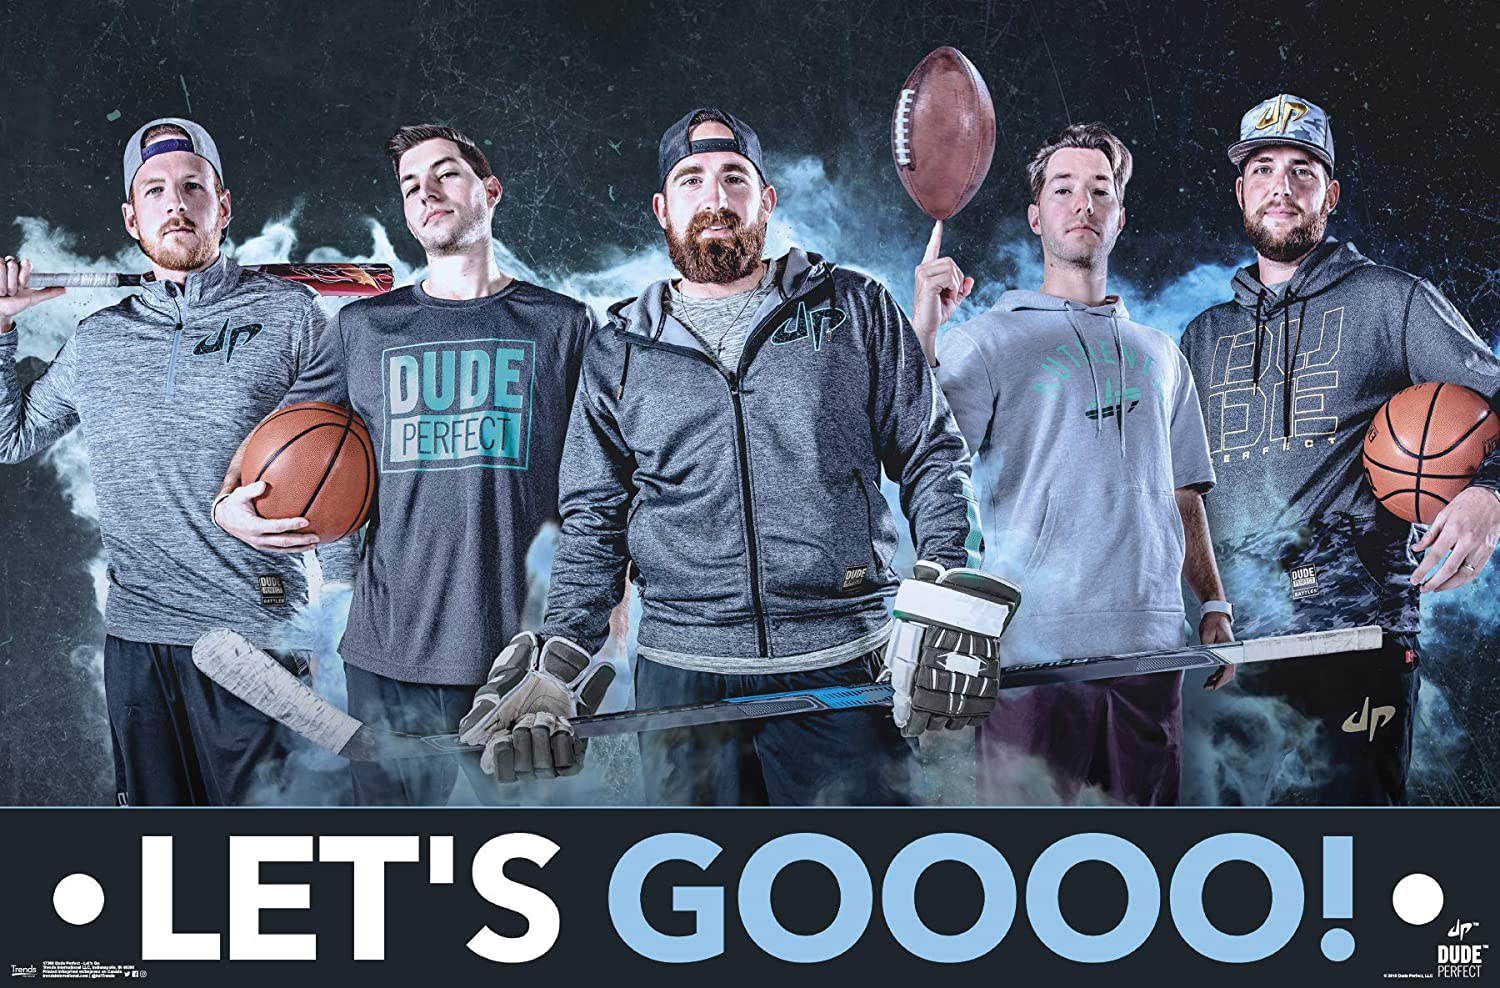 Amazon.com: Trends International Dude Perfect - Lets Go Wall Poster 22.375